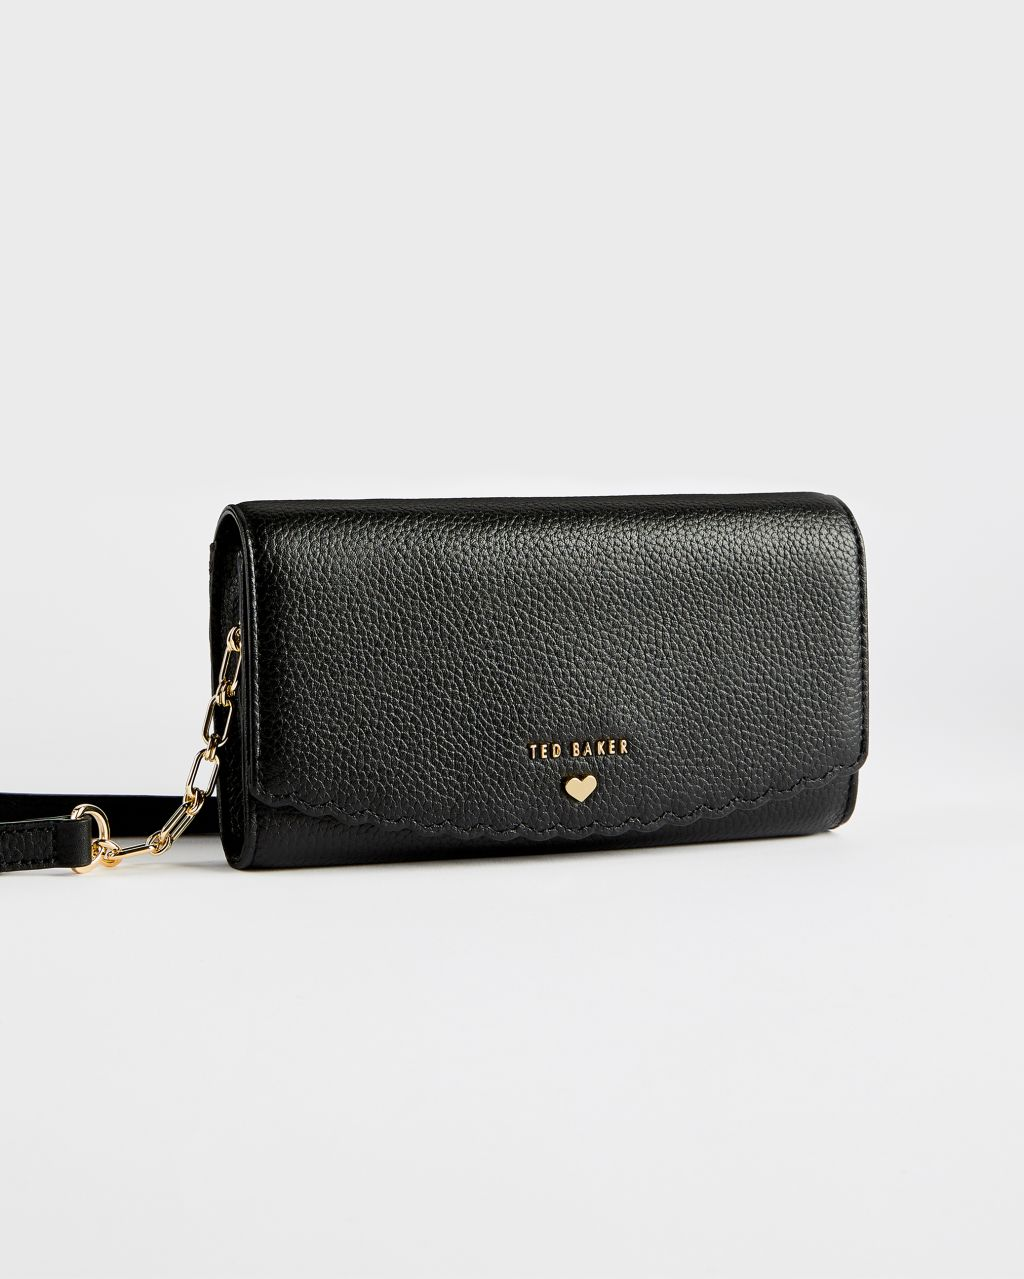 TED BAKER Scallop Detail Leather Clutch Purse | TED BAKER SALE